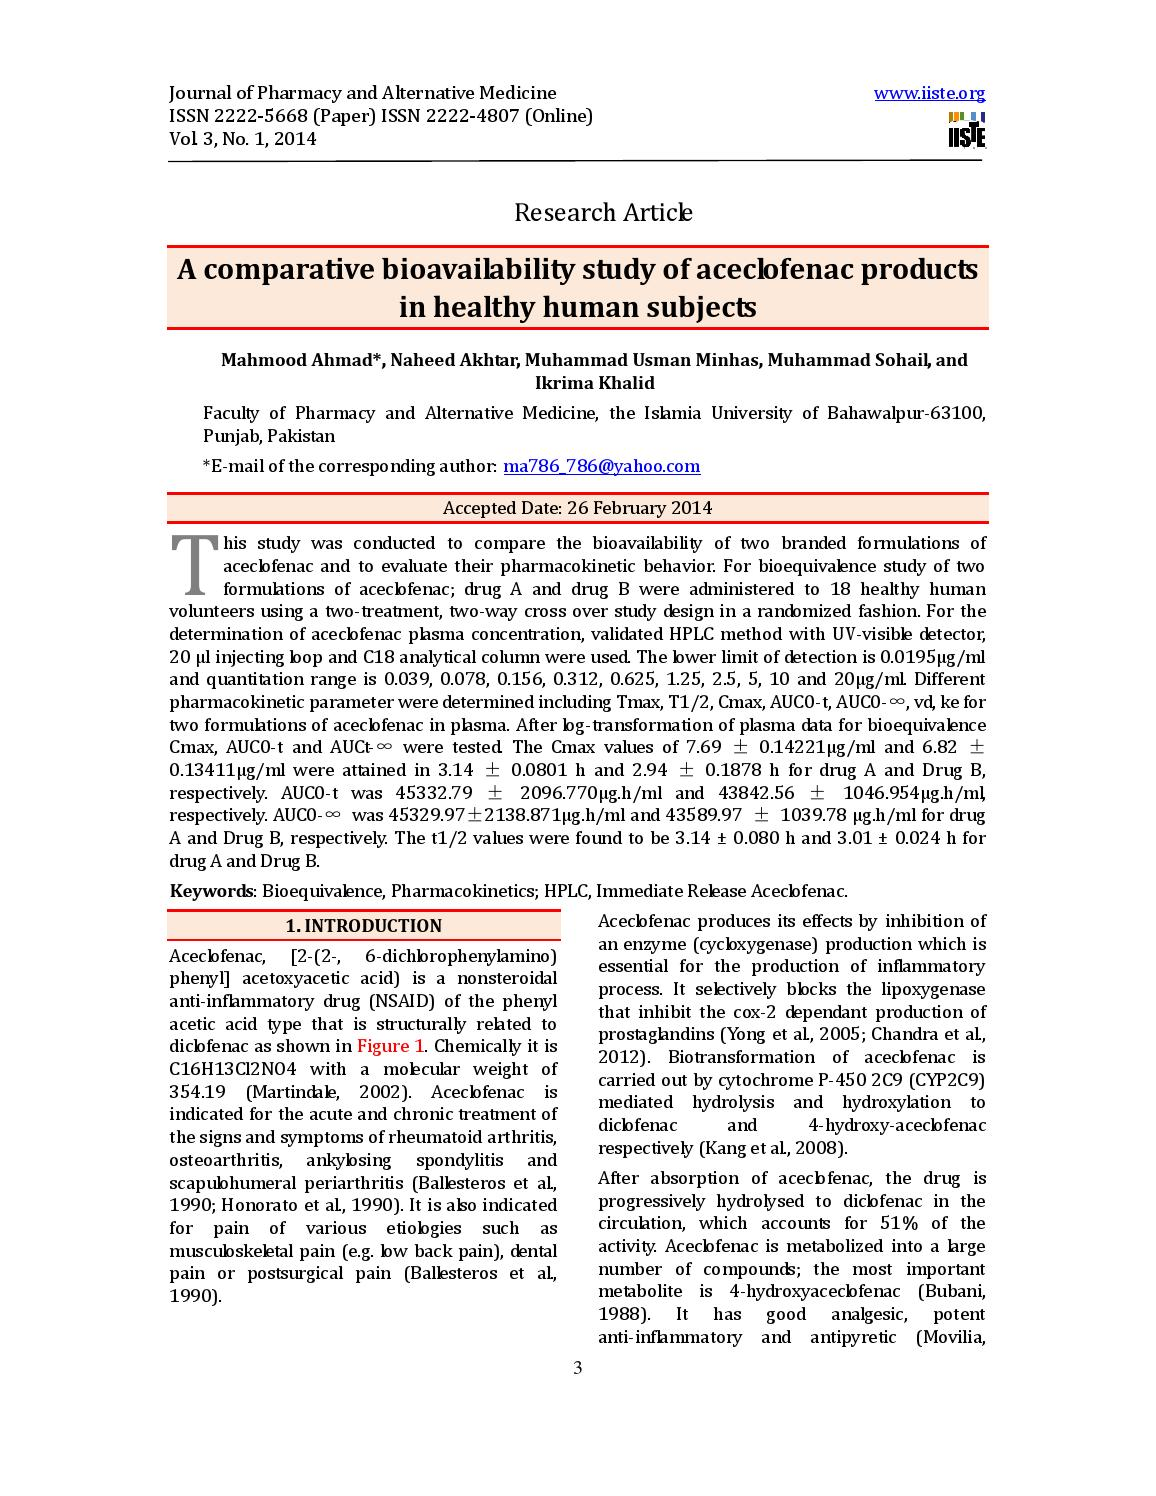 A comparative bioavailability study of aceclofenac ... - Issuu